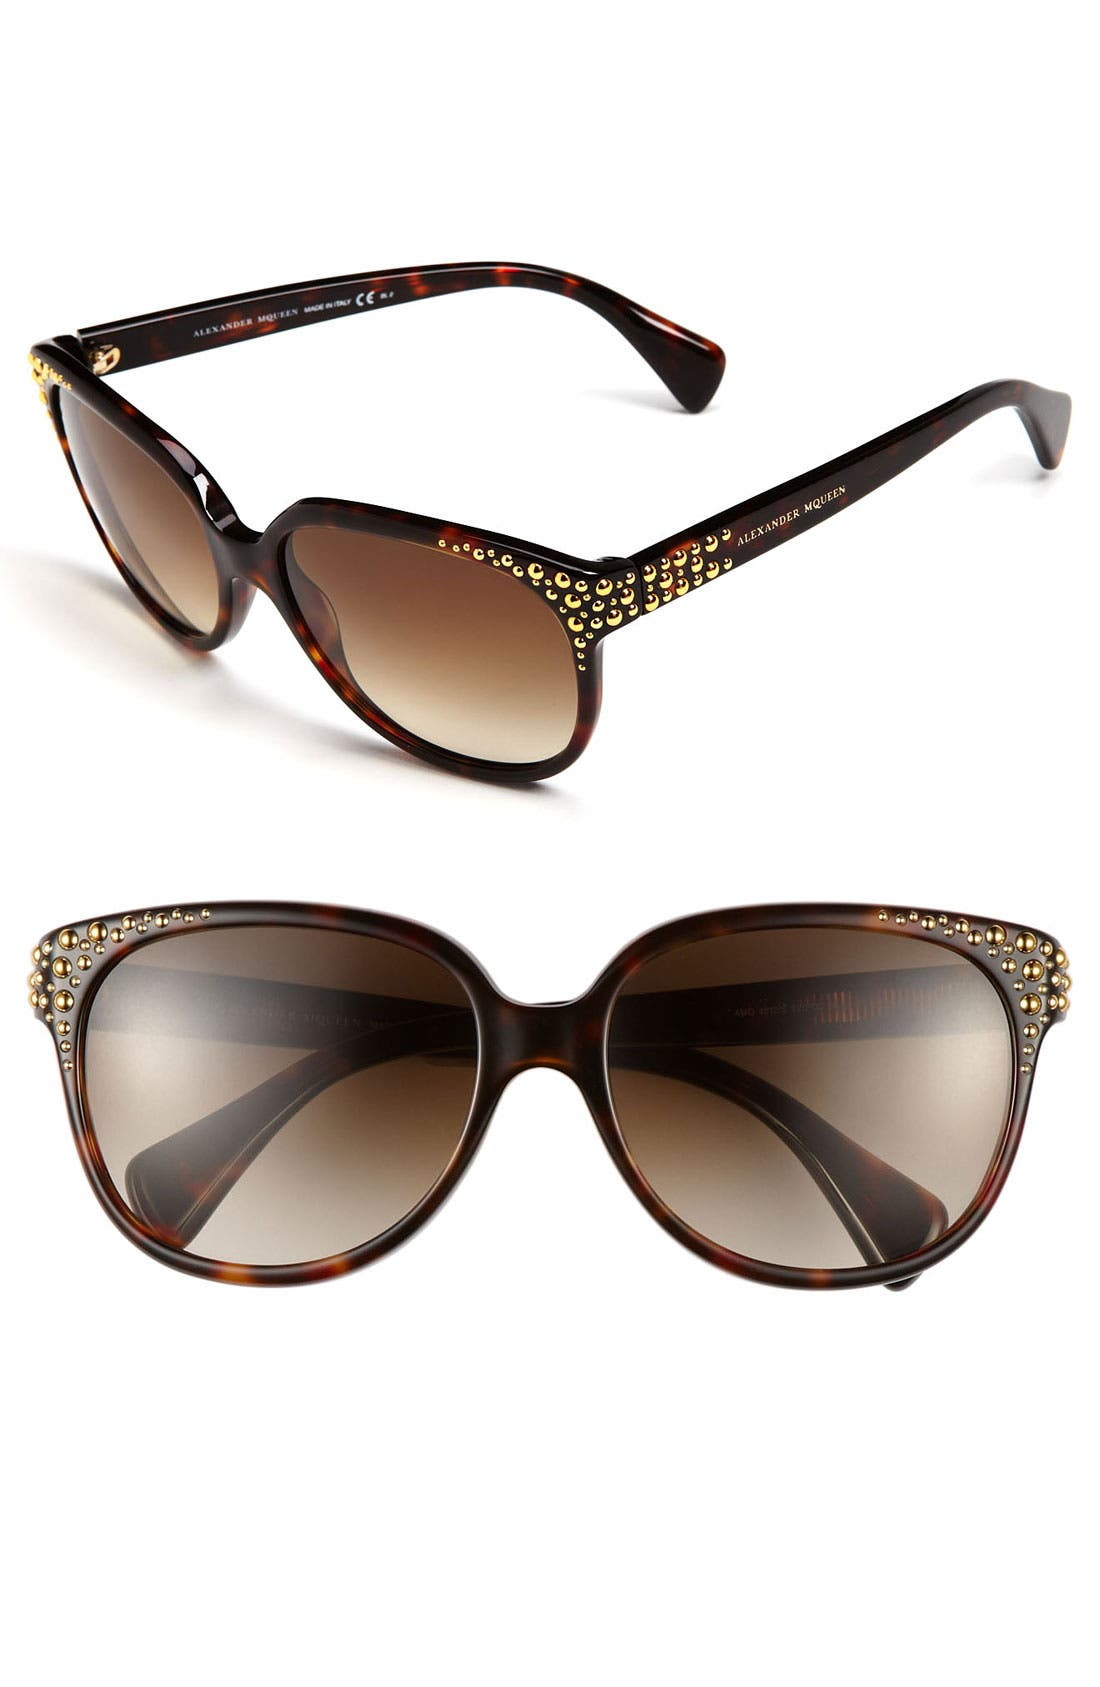 Alternate Image 1 Selected - Alexander McQueen 58mm Studded Retro Sunglasses